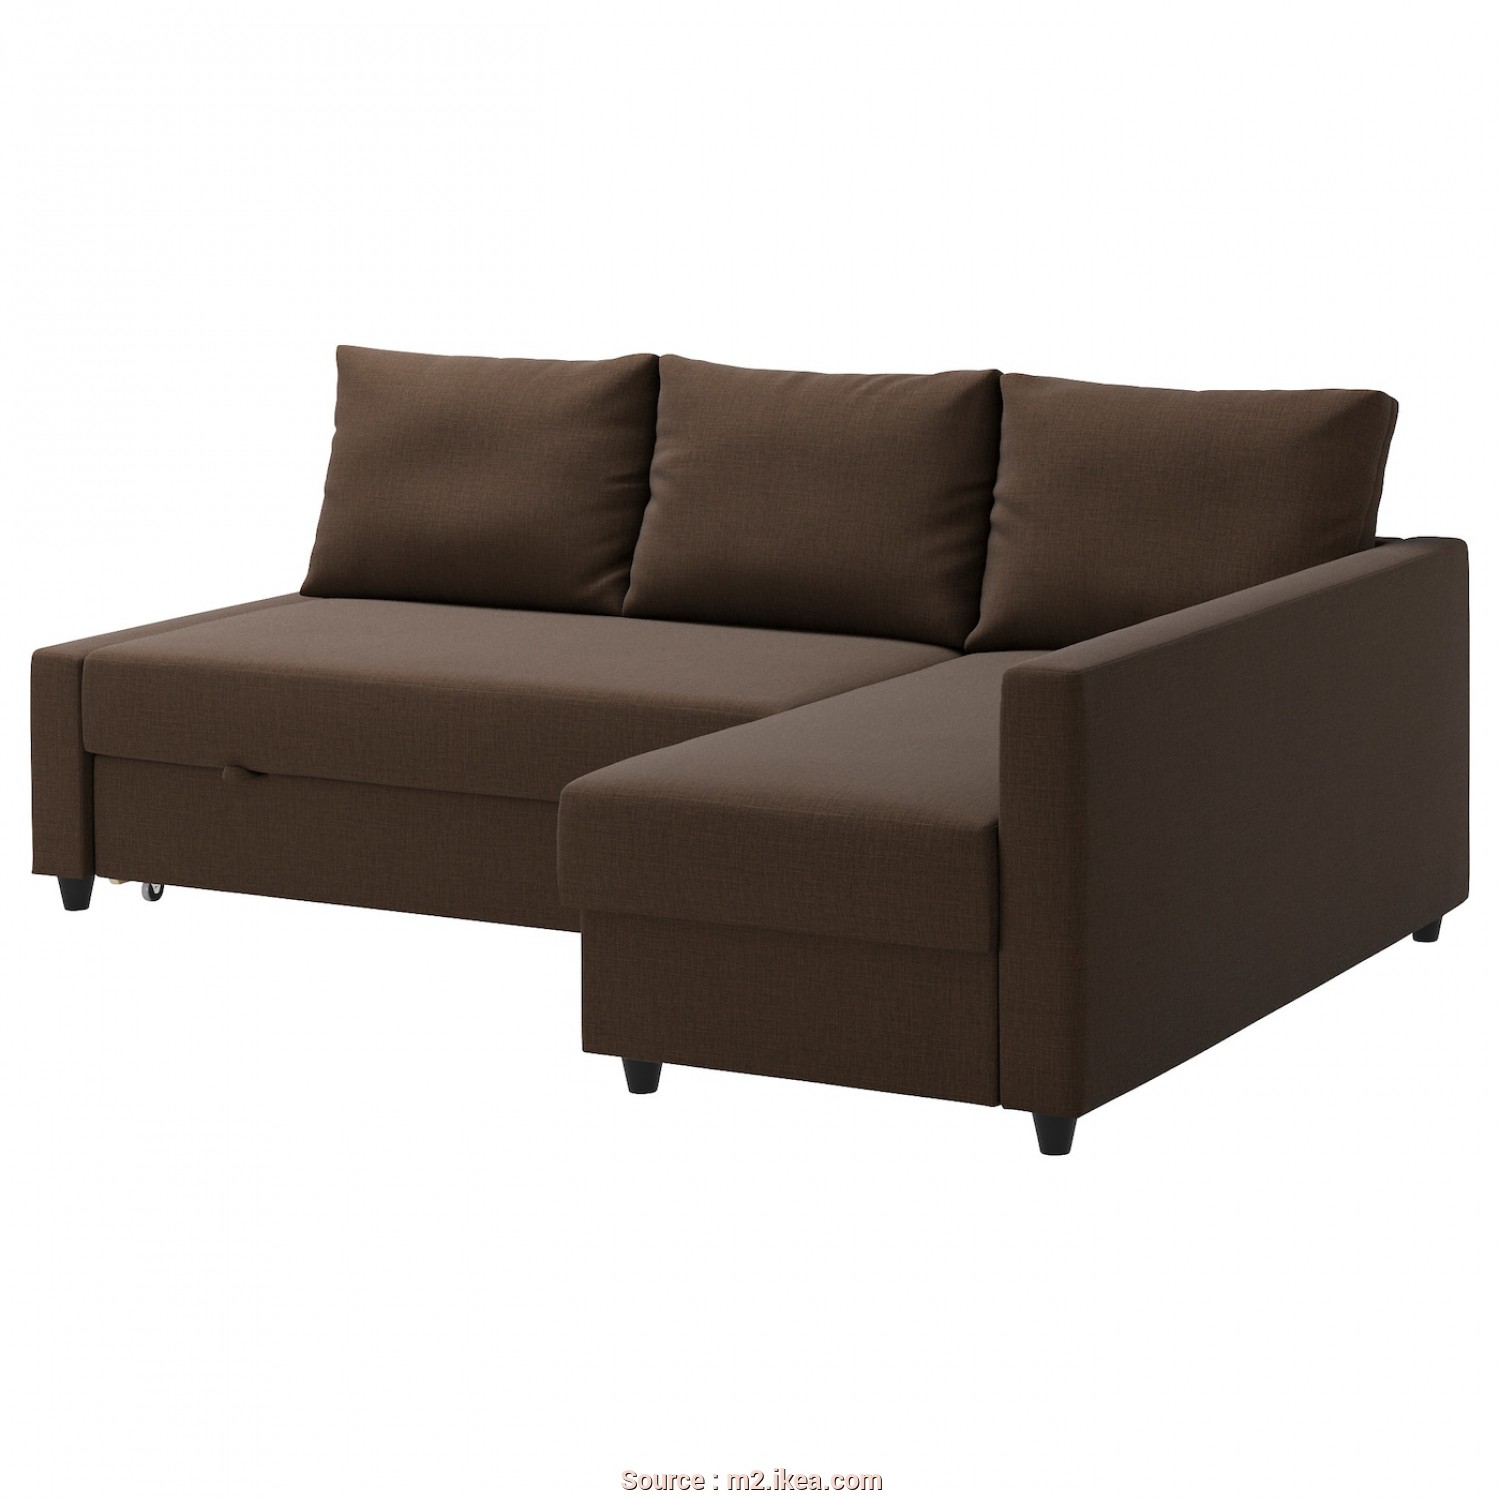 Ikea Vilasund Or Friheten, Eccellente Corner Sofa-Bed With Storage FRIHETEN Skiftebo Brown